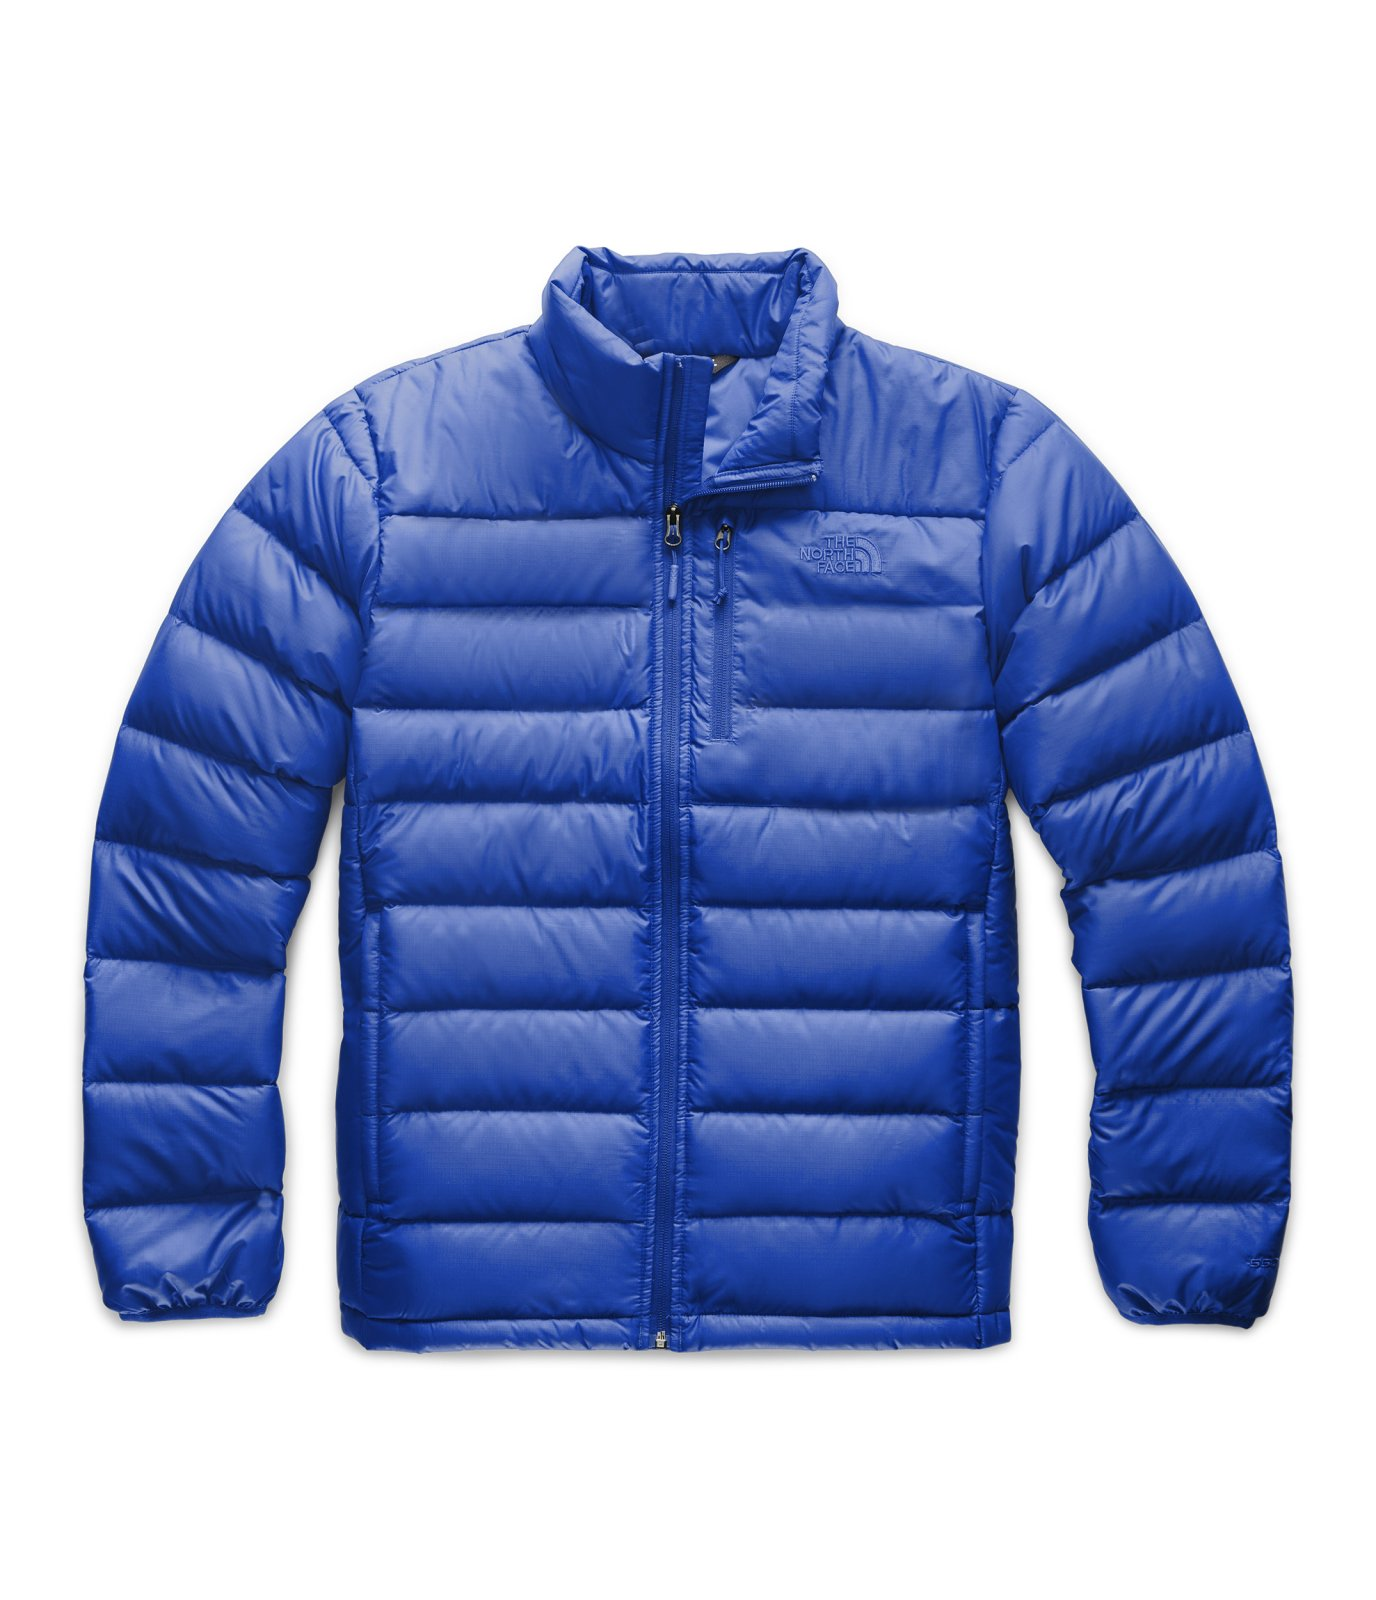 The North Face Aconcagua Men's Jacket